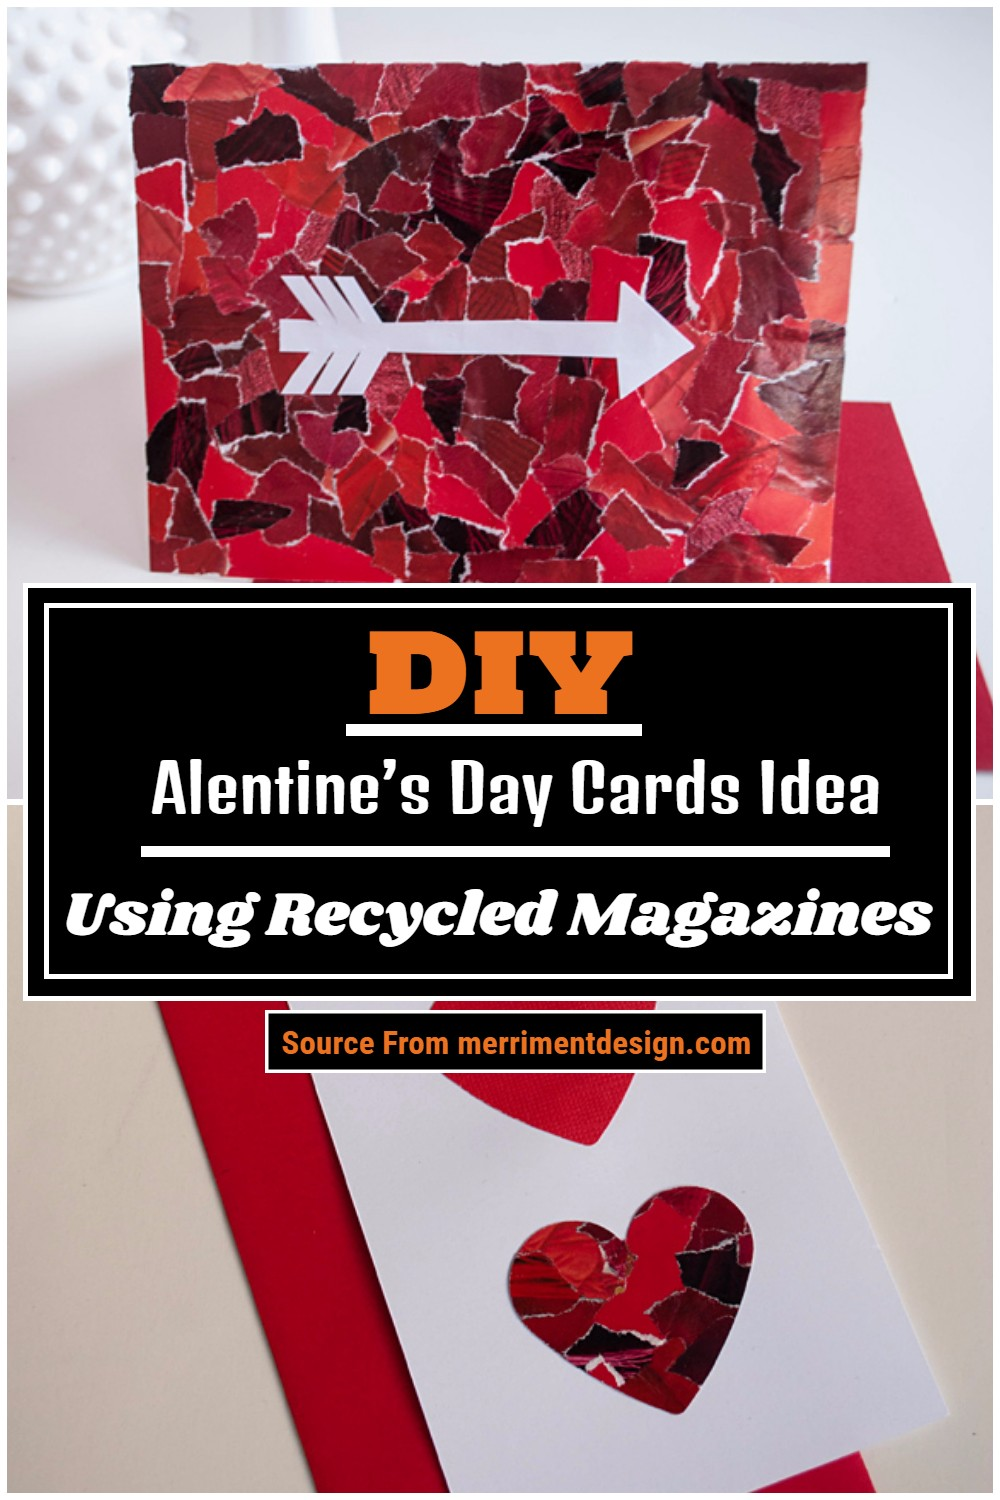 Alentine's Day Cards Idea Using Recycled Magazines